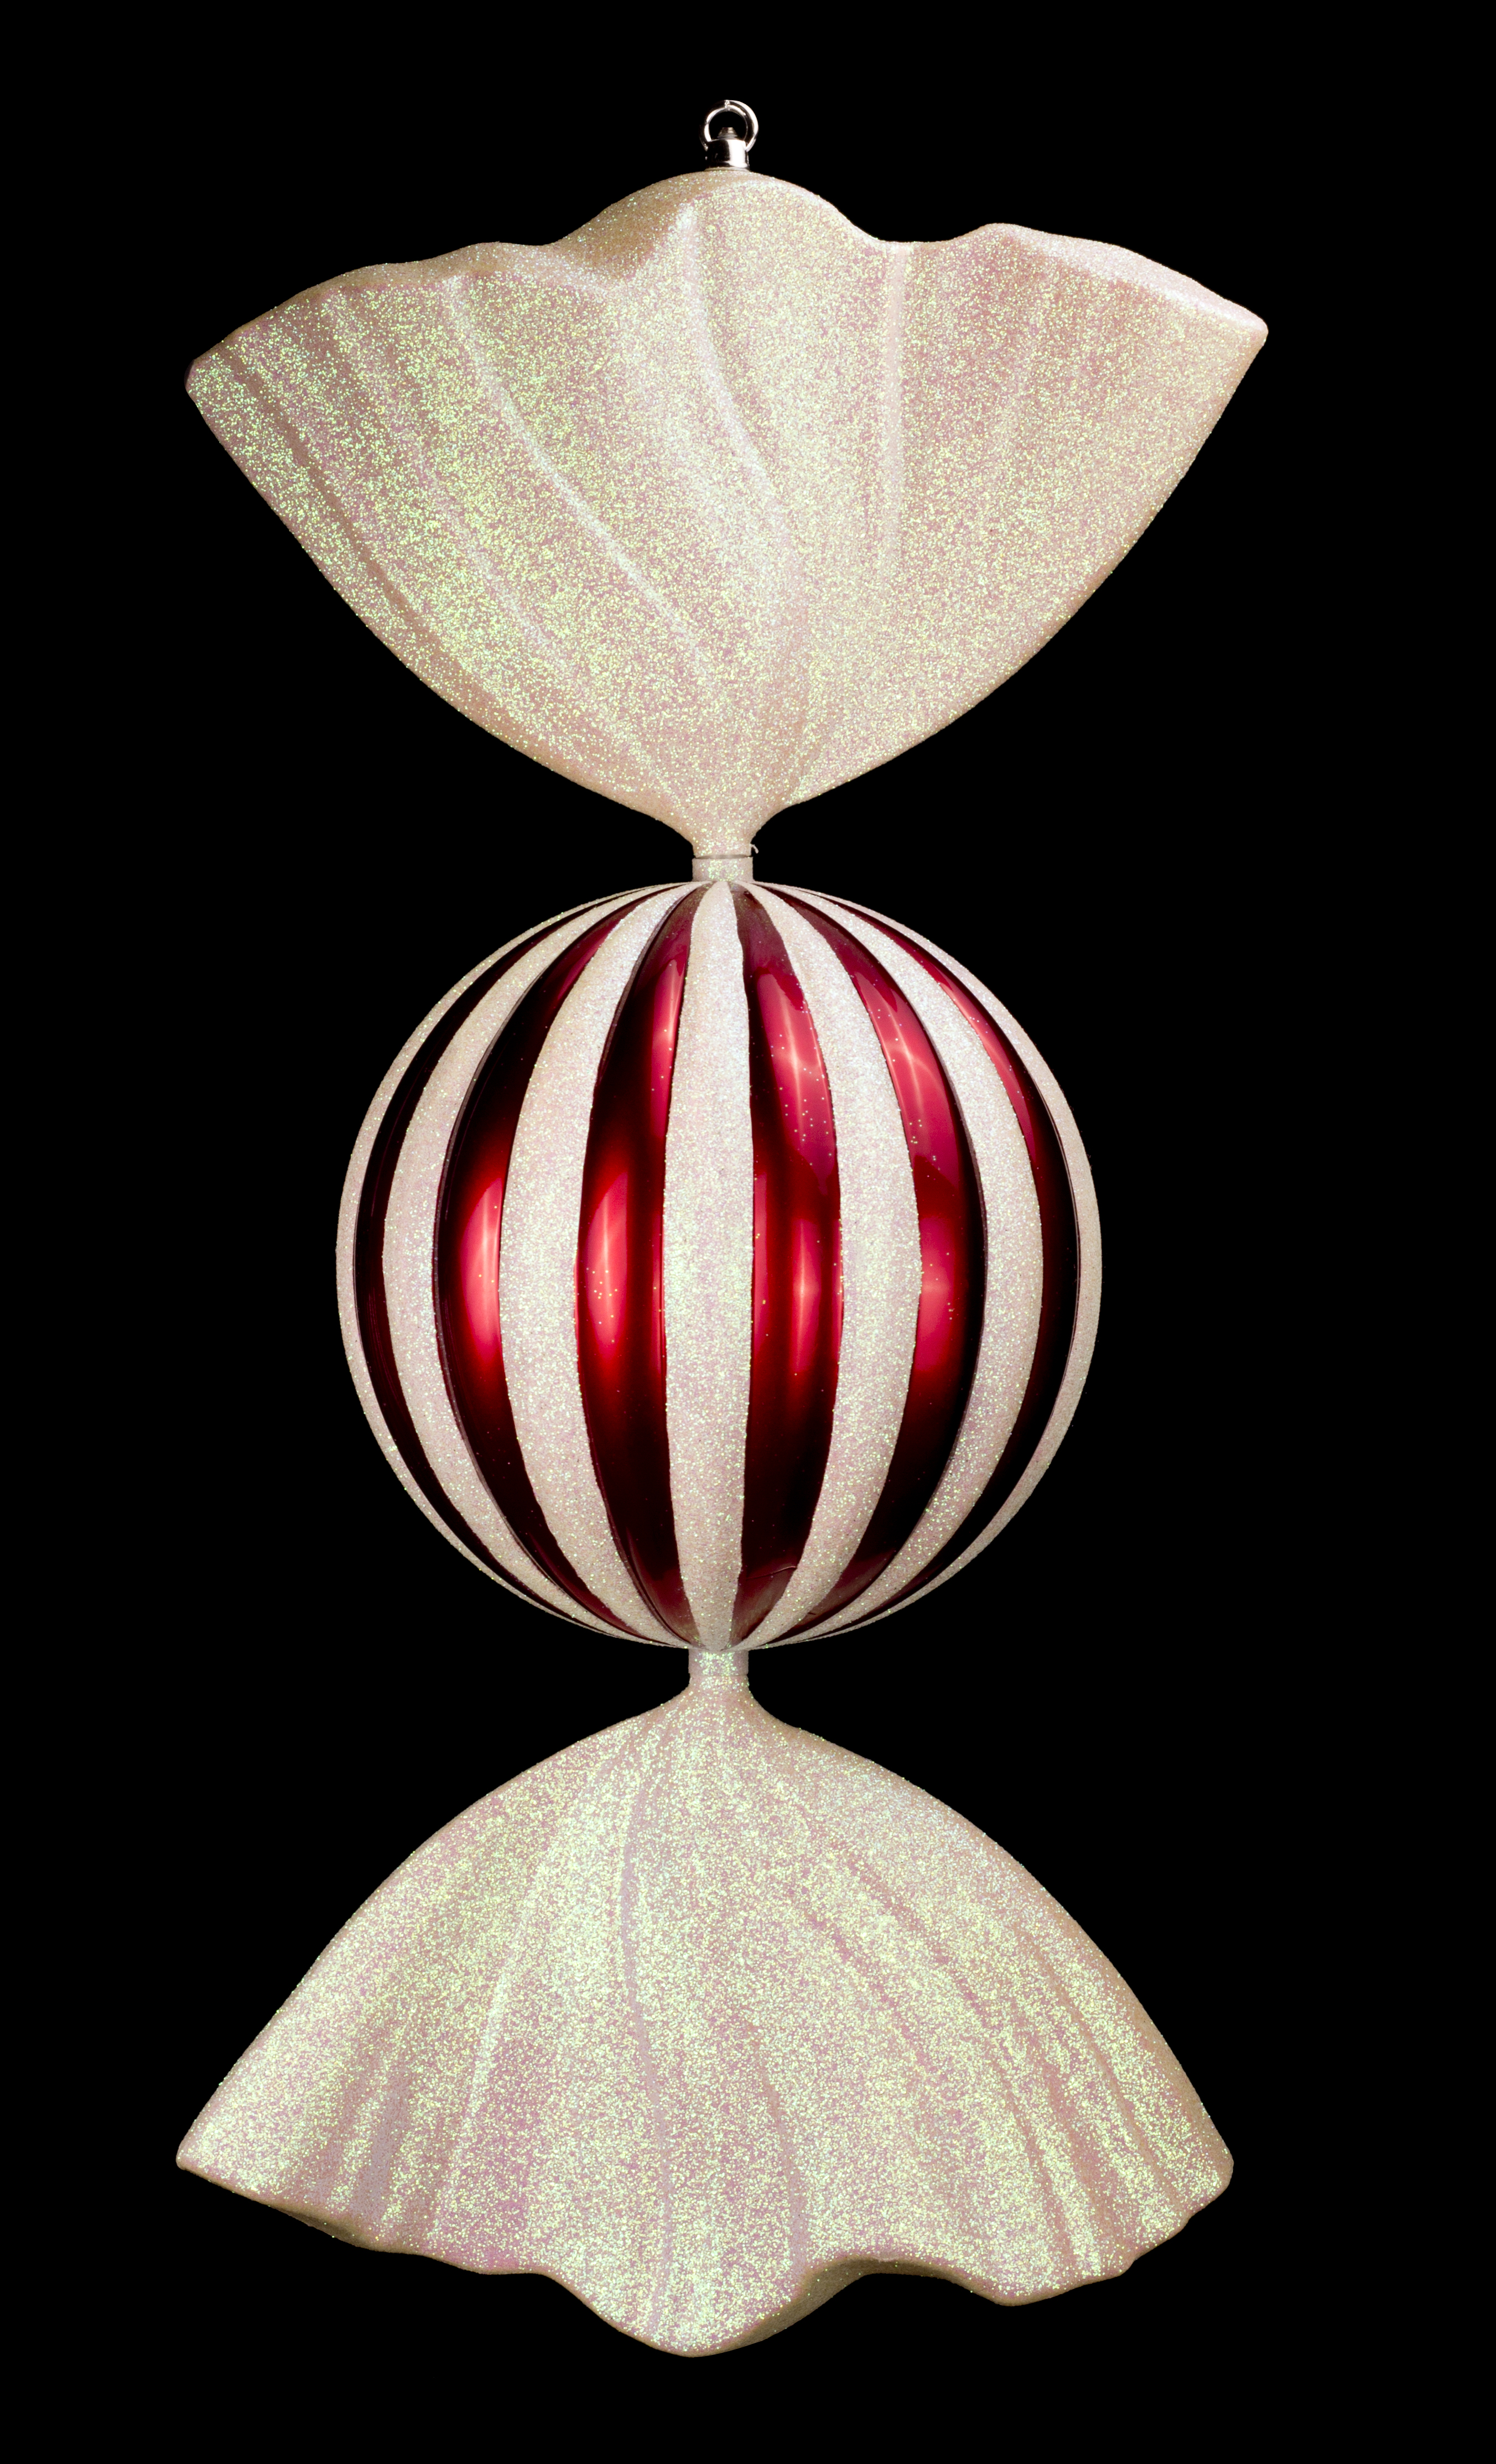 Round Peppermint Candy Ornament 34